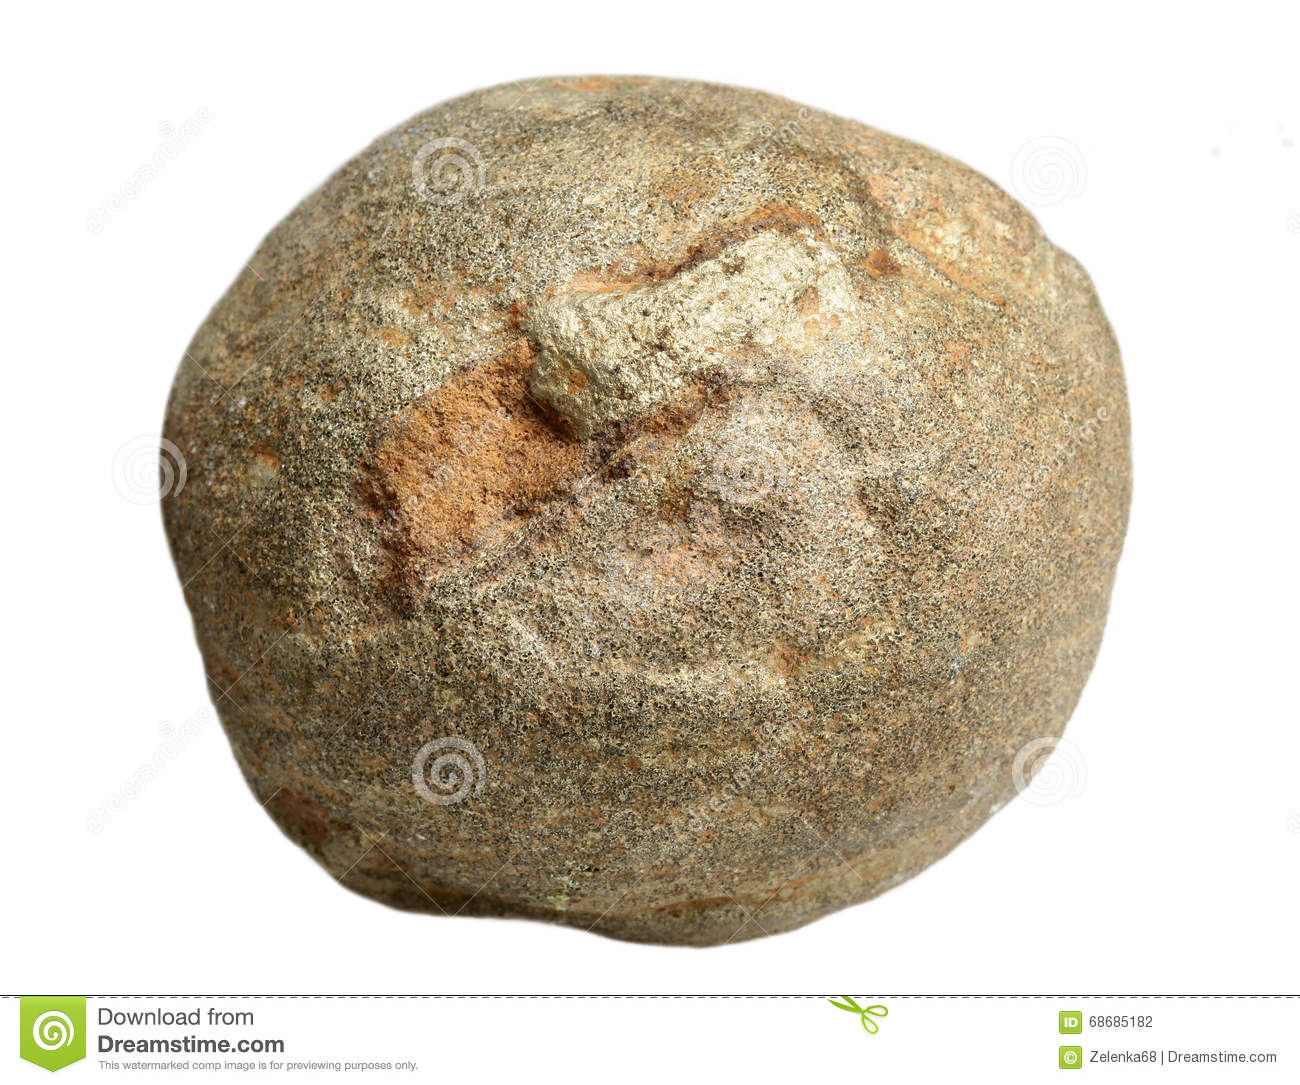 Concretion of sandstone on a white background